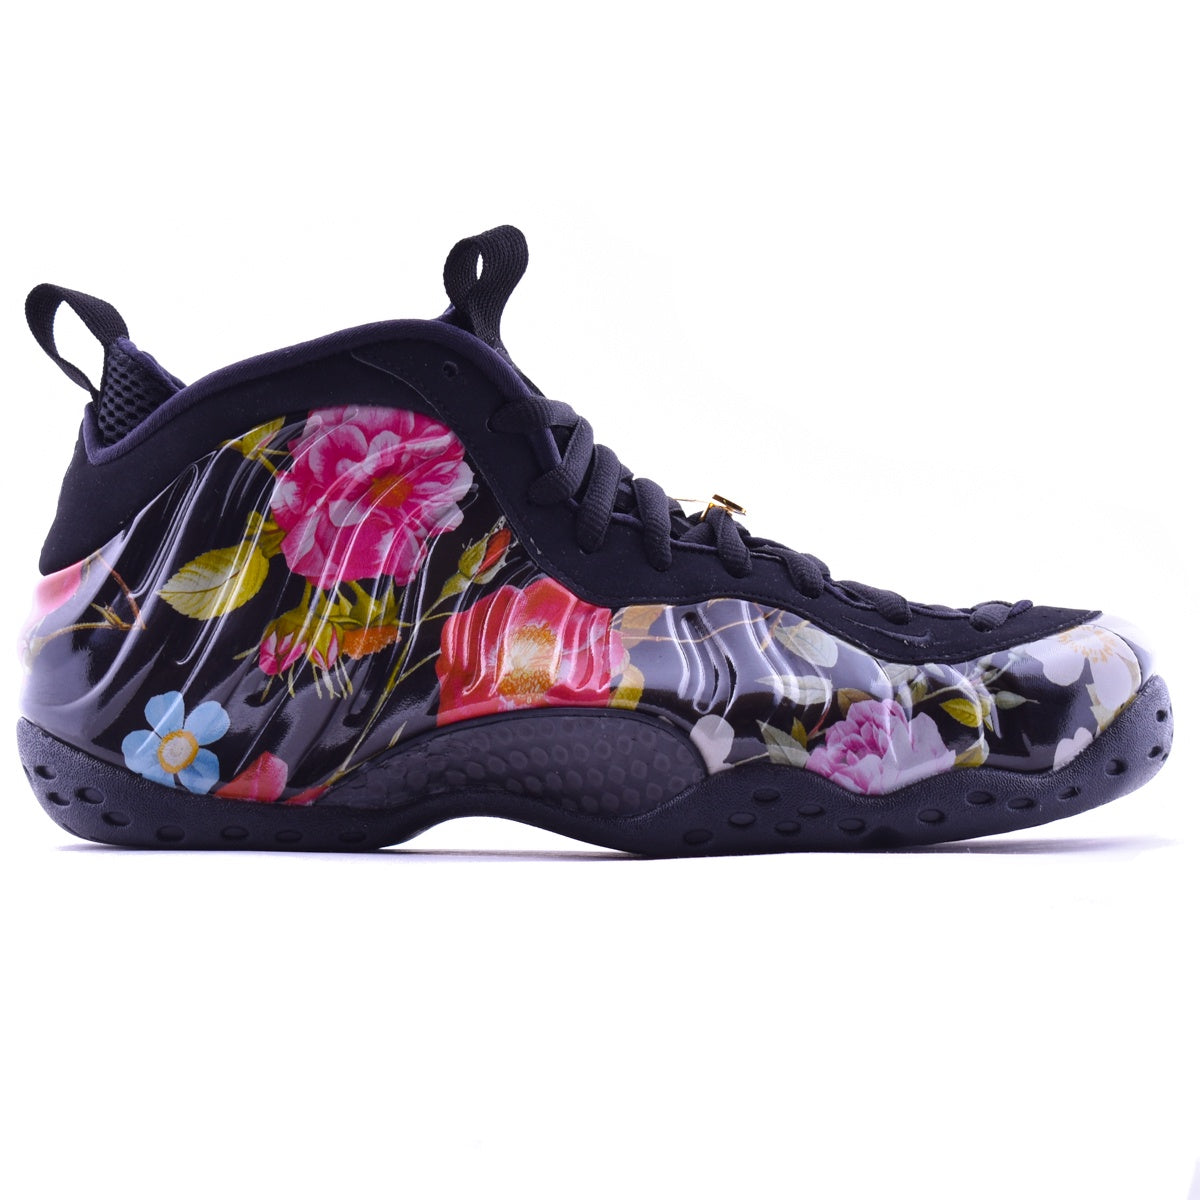 339d5399a Nike Air Foamposite One Valentine s Day